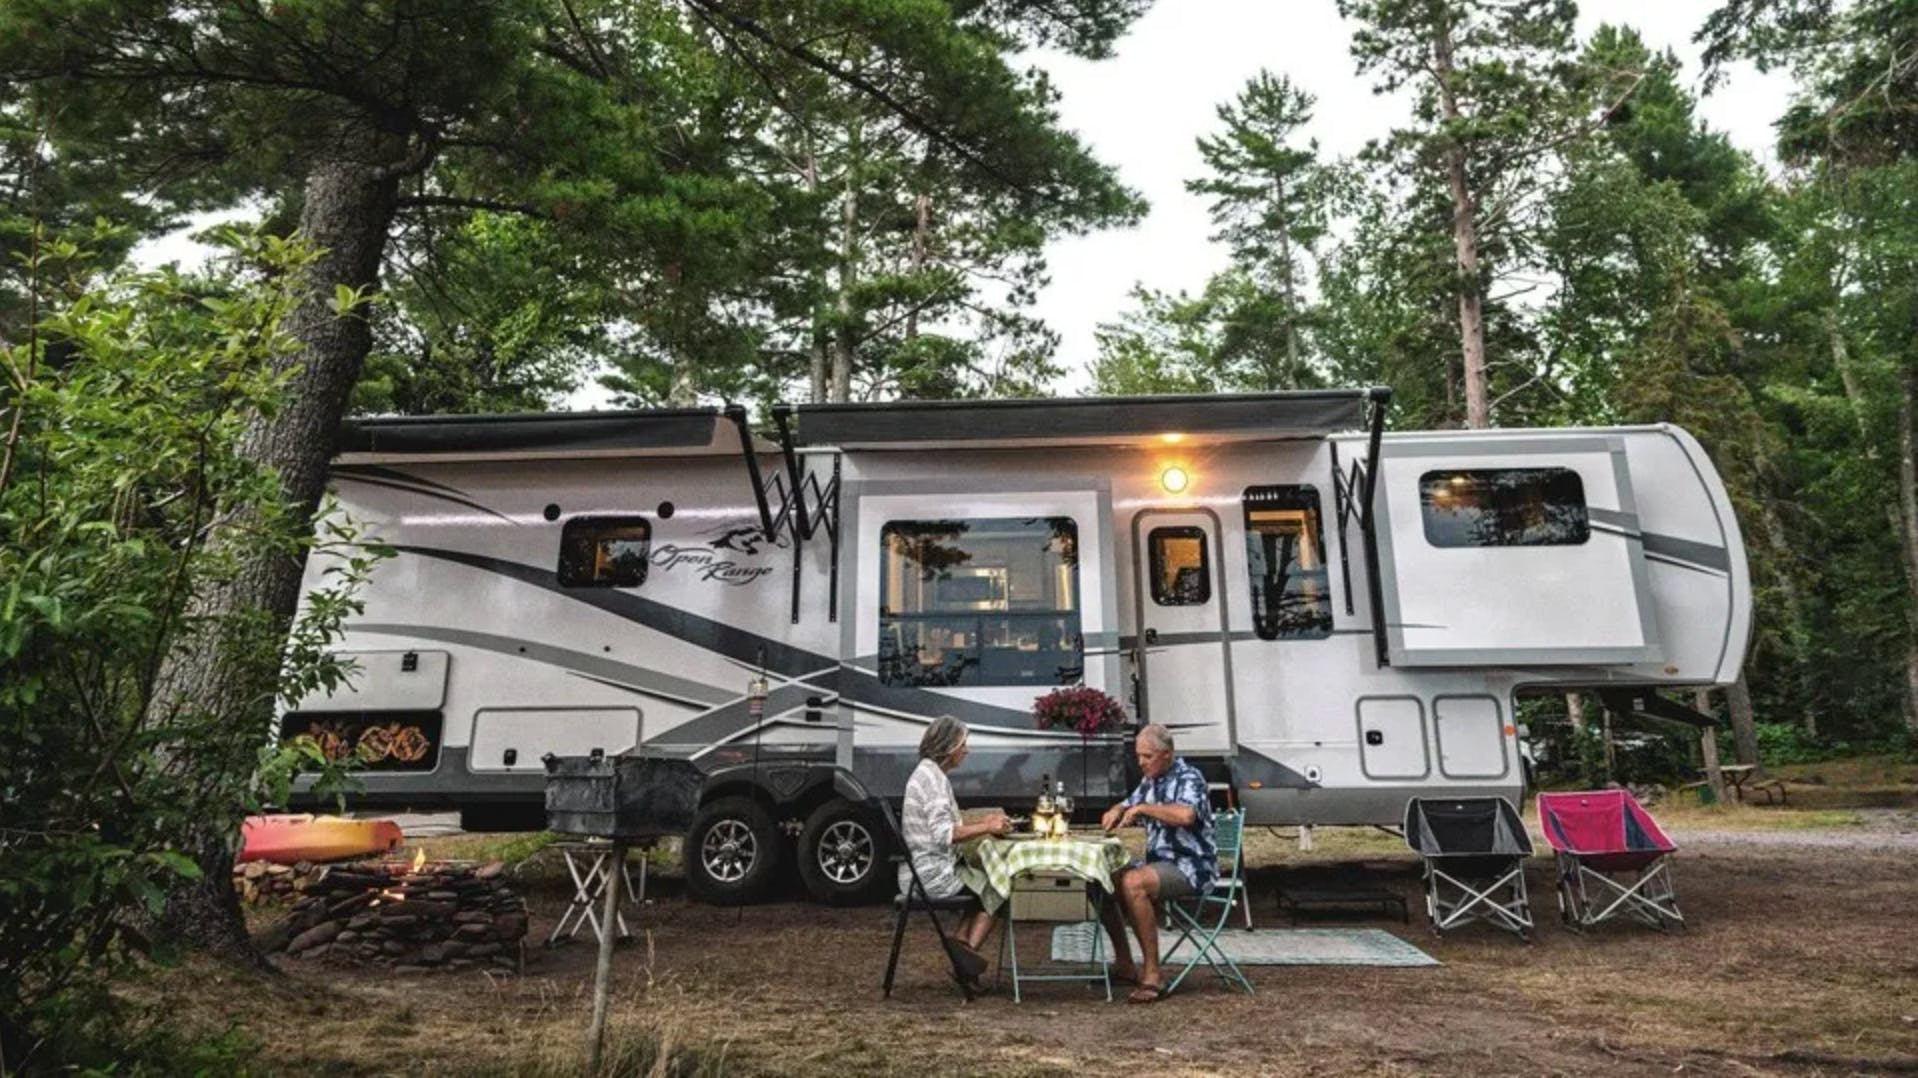 RV Industry Seeing Positive Trends Amid COVID